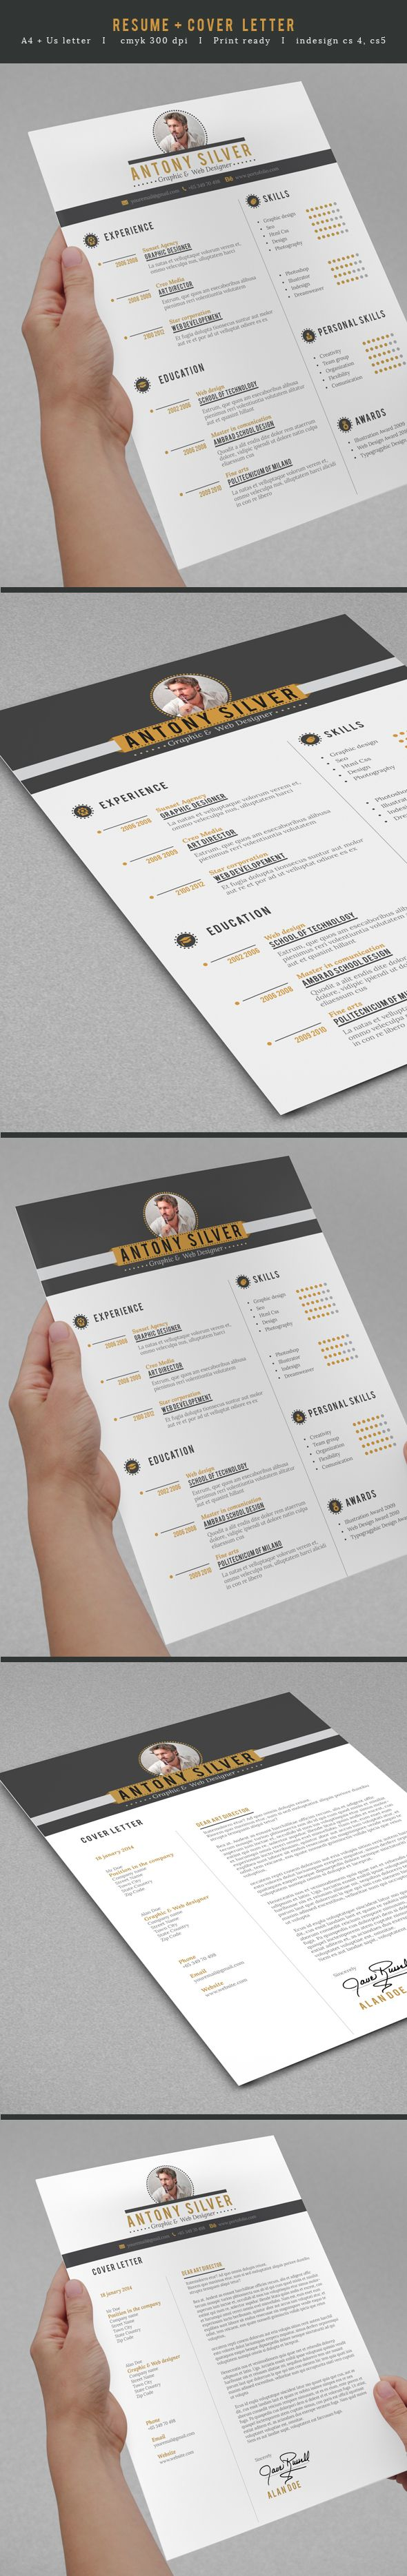 Want to have your own cool infographic resume? Go to styleresumes.com!